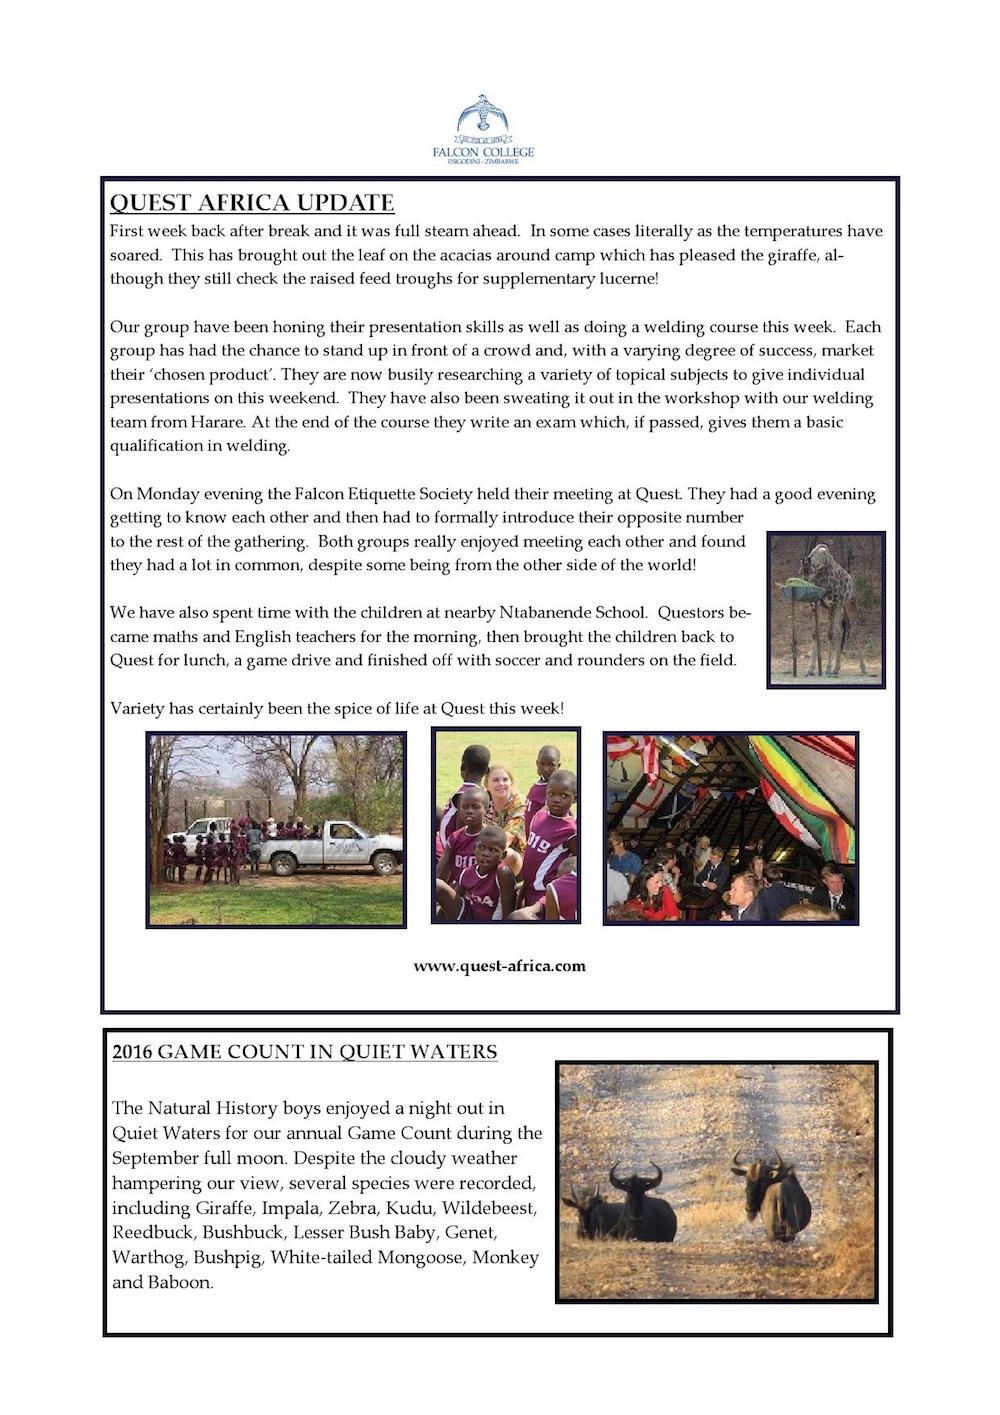 headmasters-newsletter-friday-30th-september-2016-edited_000002